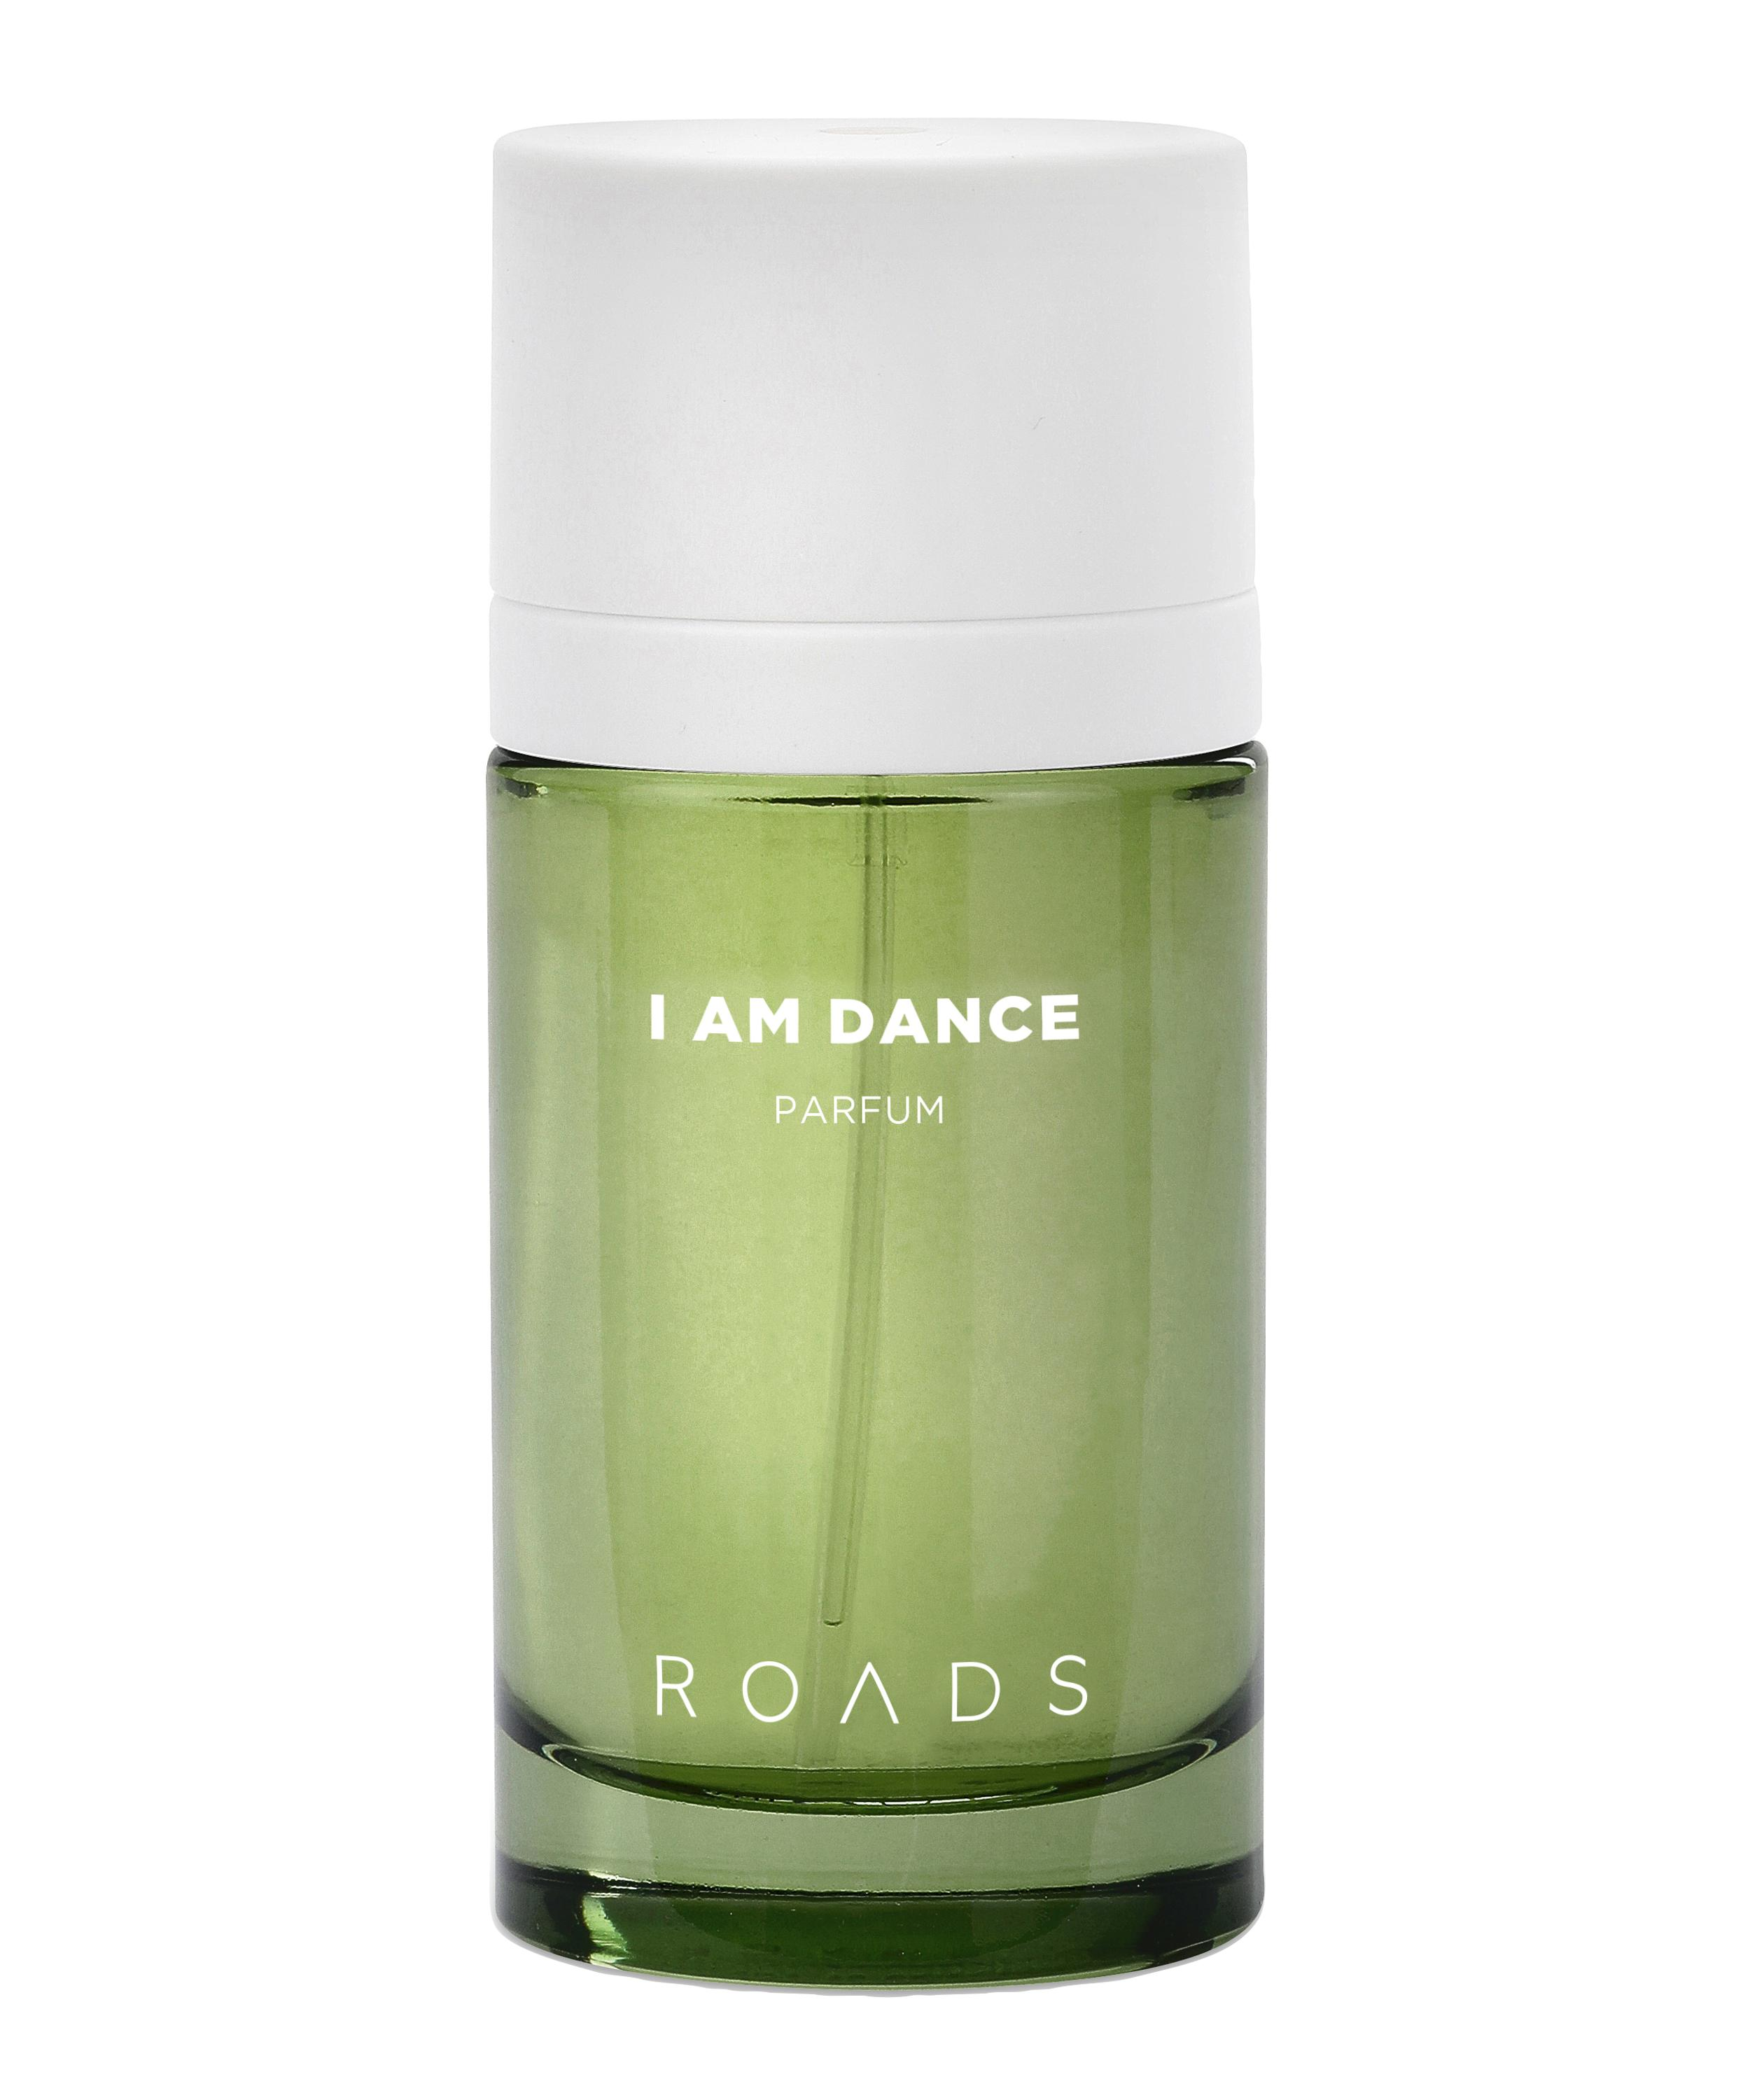 Roads - I Am Dance Perfume